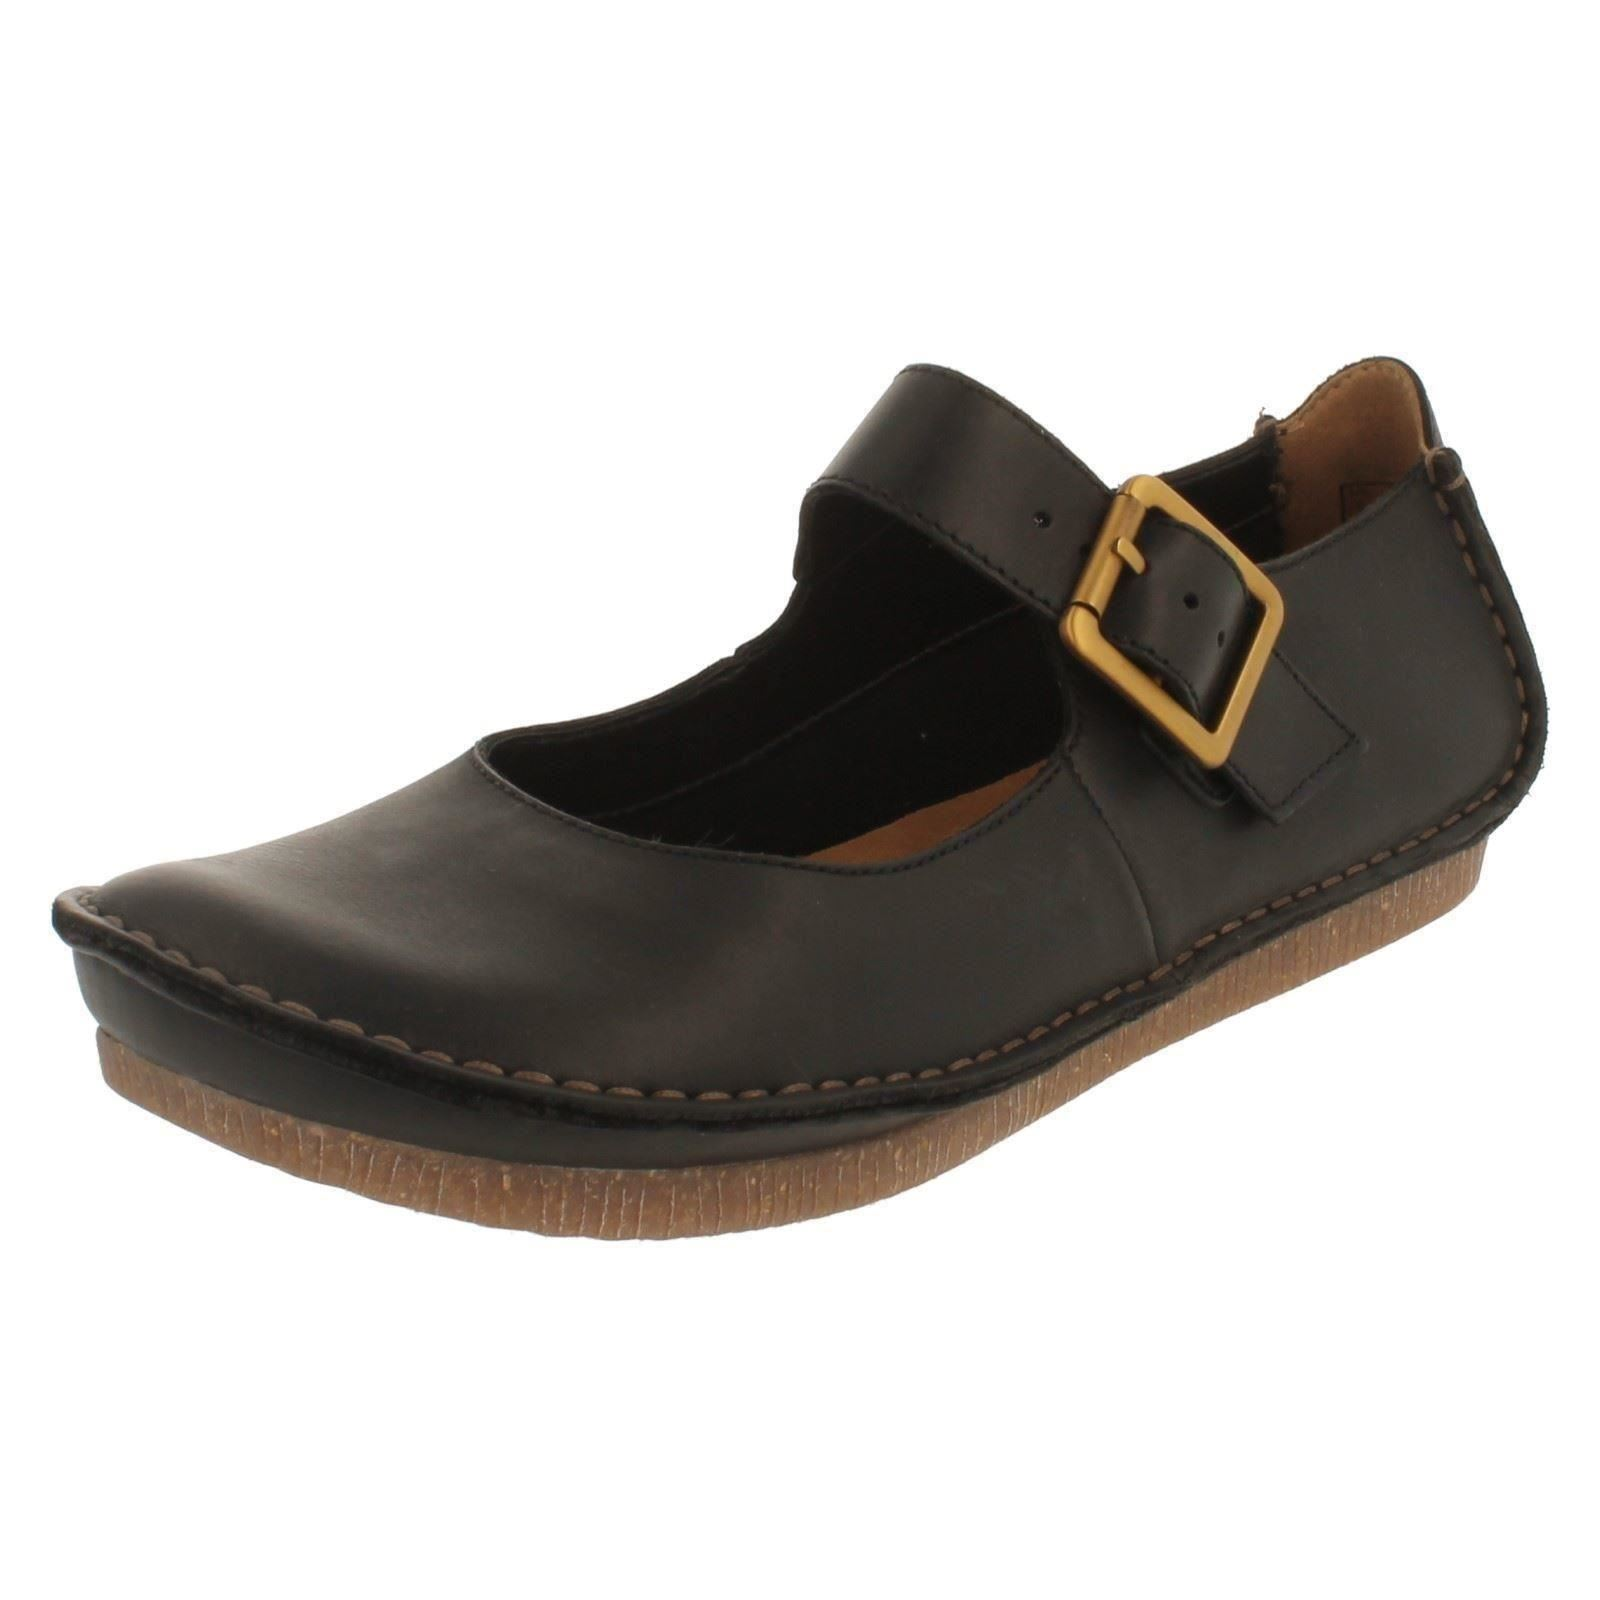 Clarks Mary Jane Shoes Flats